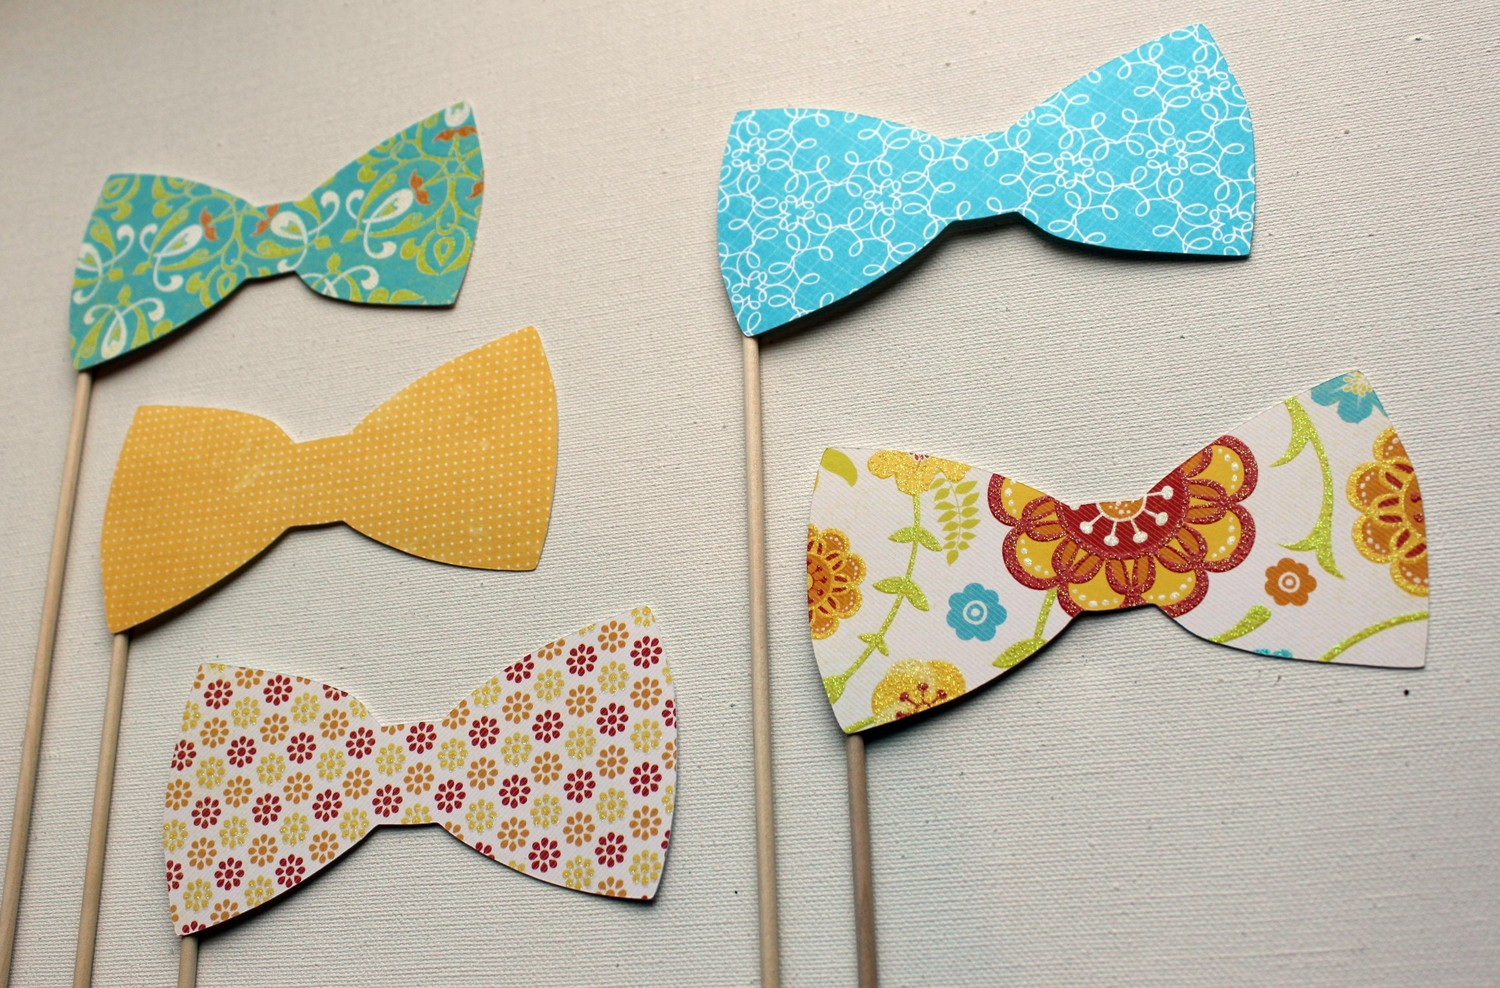 Fun bow ties and hair bow props meandyoulookbook add pronofoot35fo Choice Image